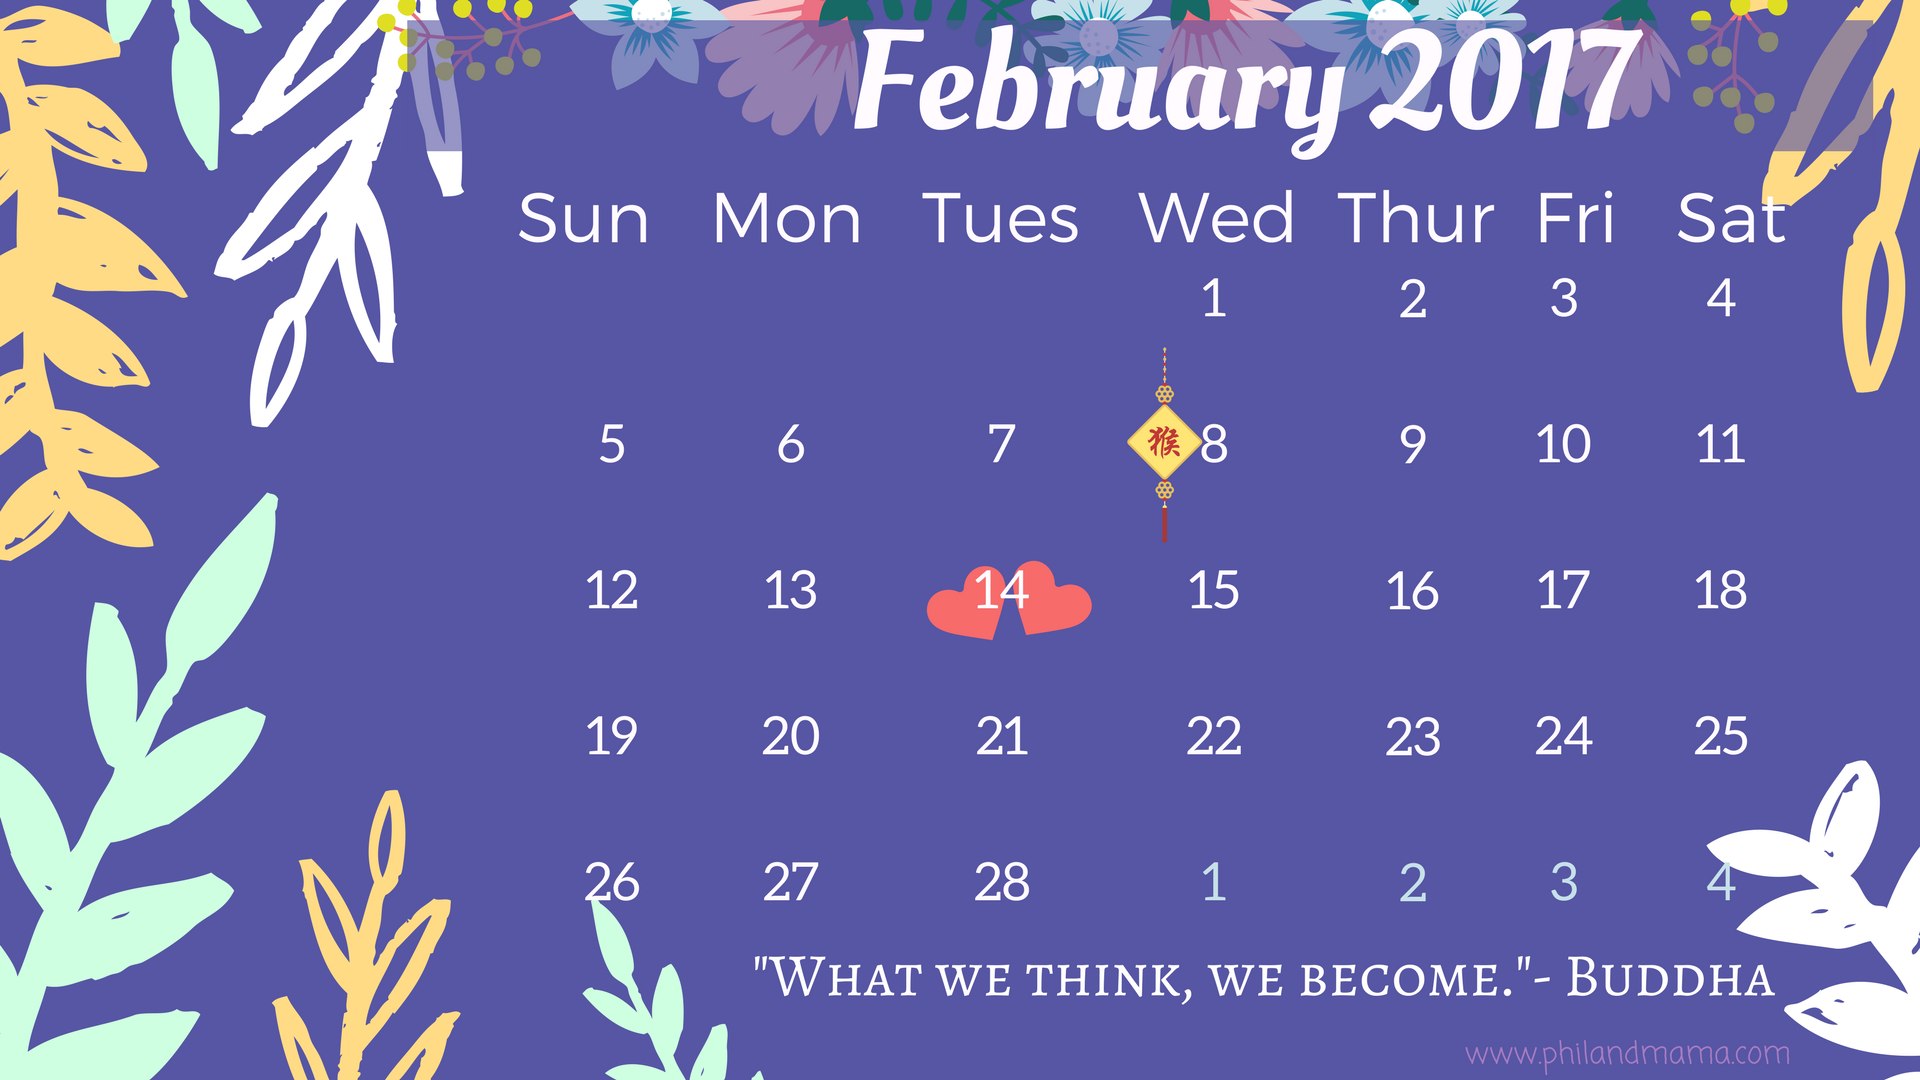 February 2017 free printable calendar.Click on the image for the PDF file. For the image file, right-click and save as. (FIXED)